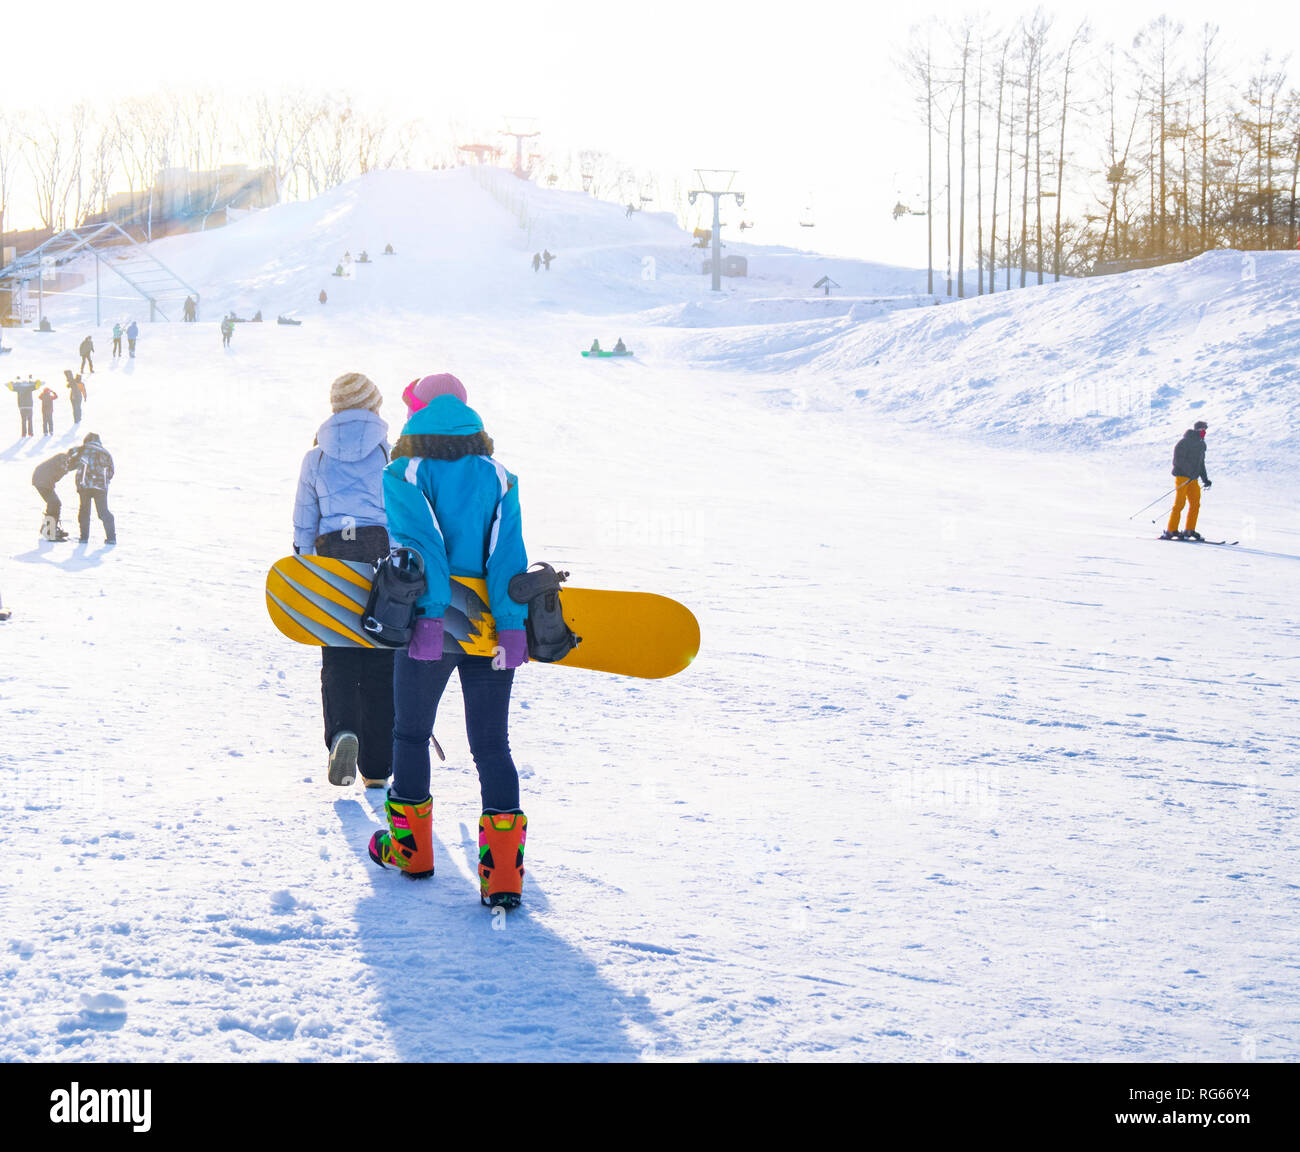 Young girls in special colored suits for winter fun and winter sports climb the hill to learn how to snowboard on a sunny day. - Stock Image